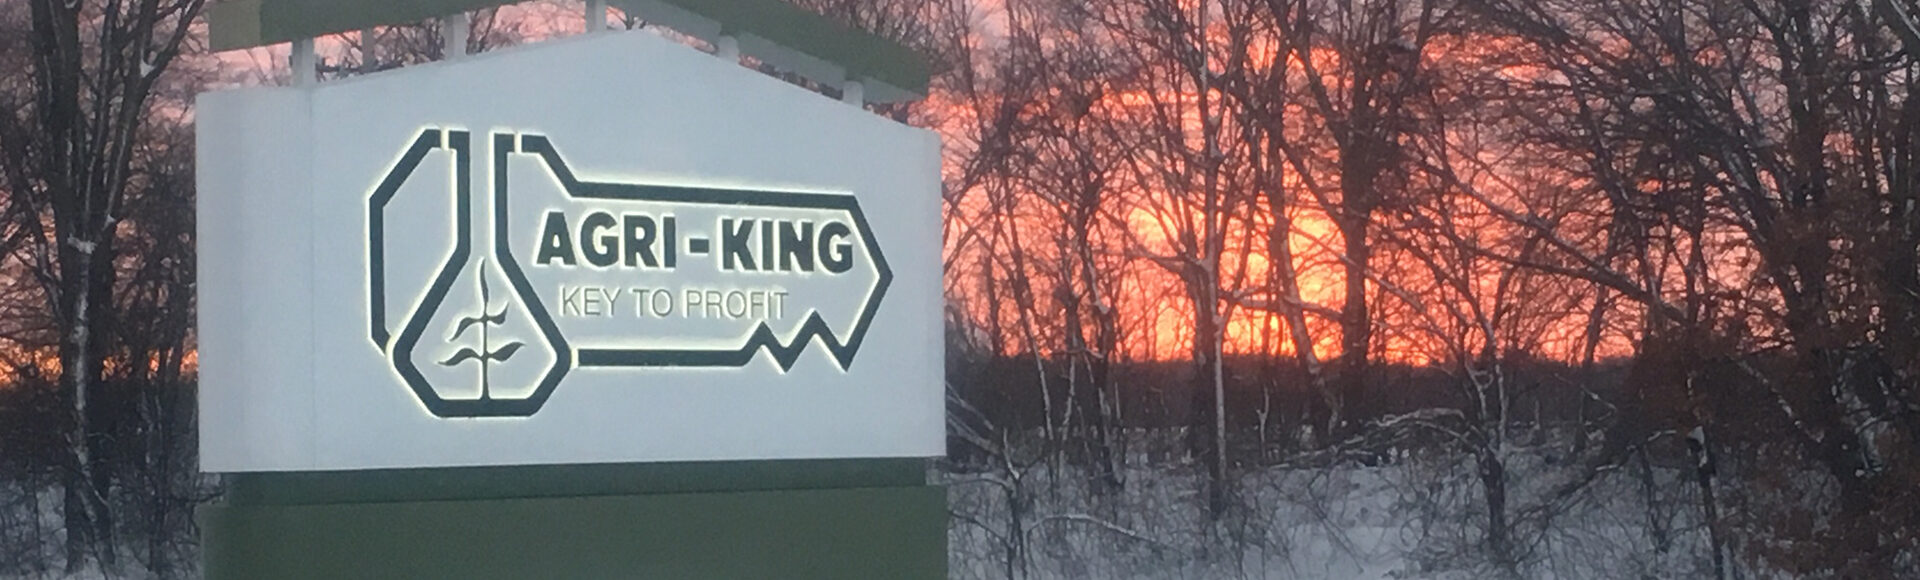 Agri-King - Key to Profit - Sunset Sign photo